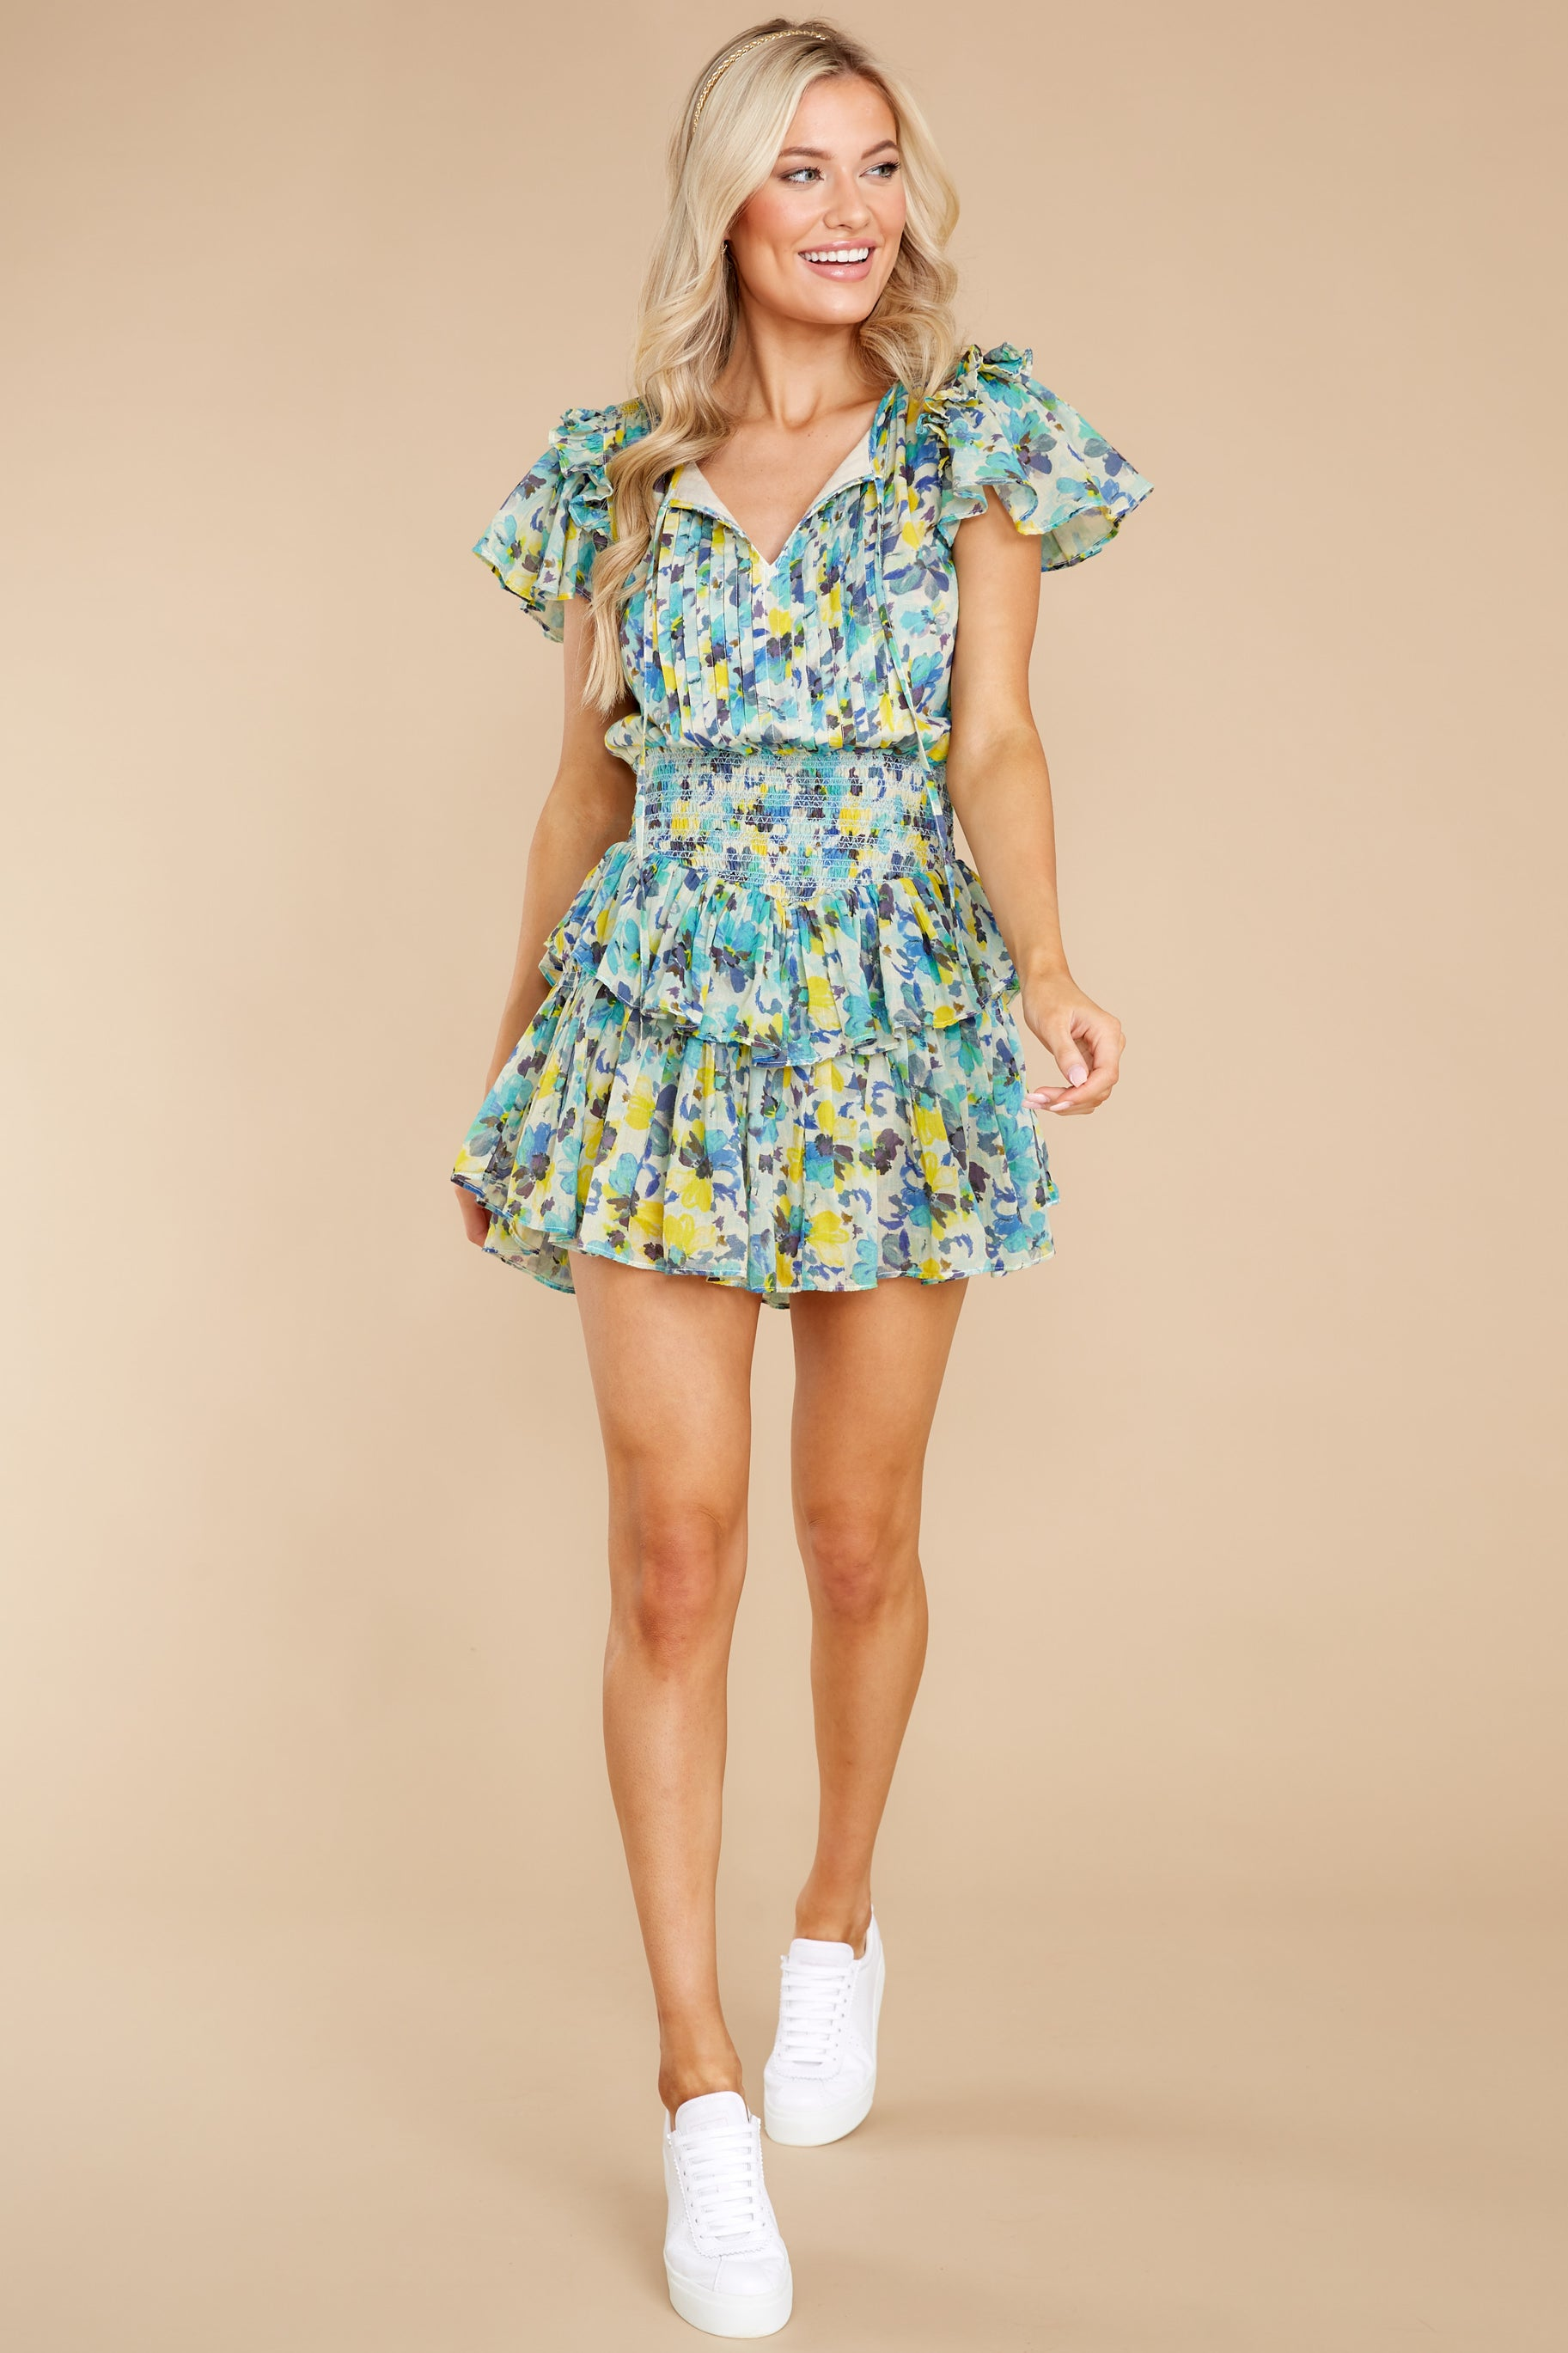 5 Audette Acai Berry Floral Print Dress at reddress.com